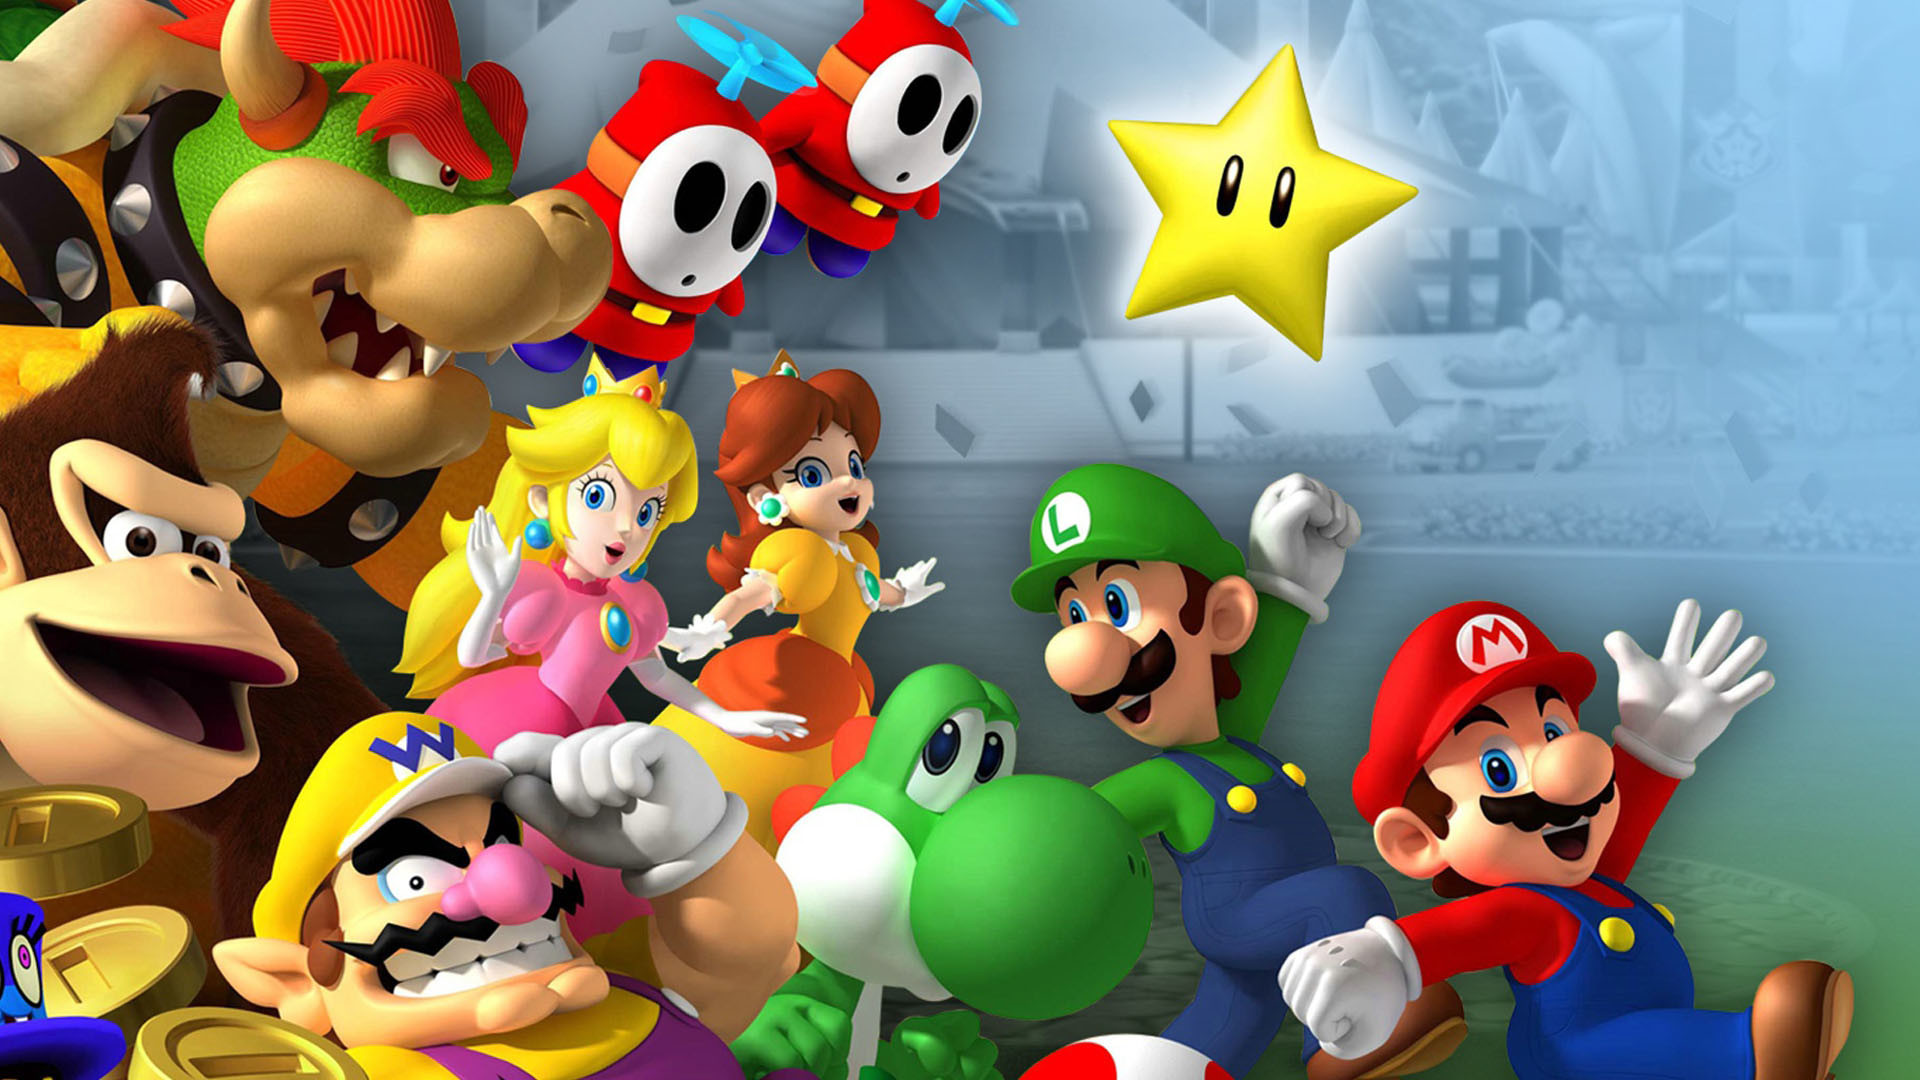 Mario and luigi wallpaper hd 64 images 1920x1080 6 mario and luigi wallpaper4 600x338 altavistaventures Gallery